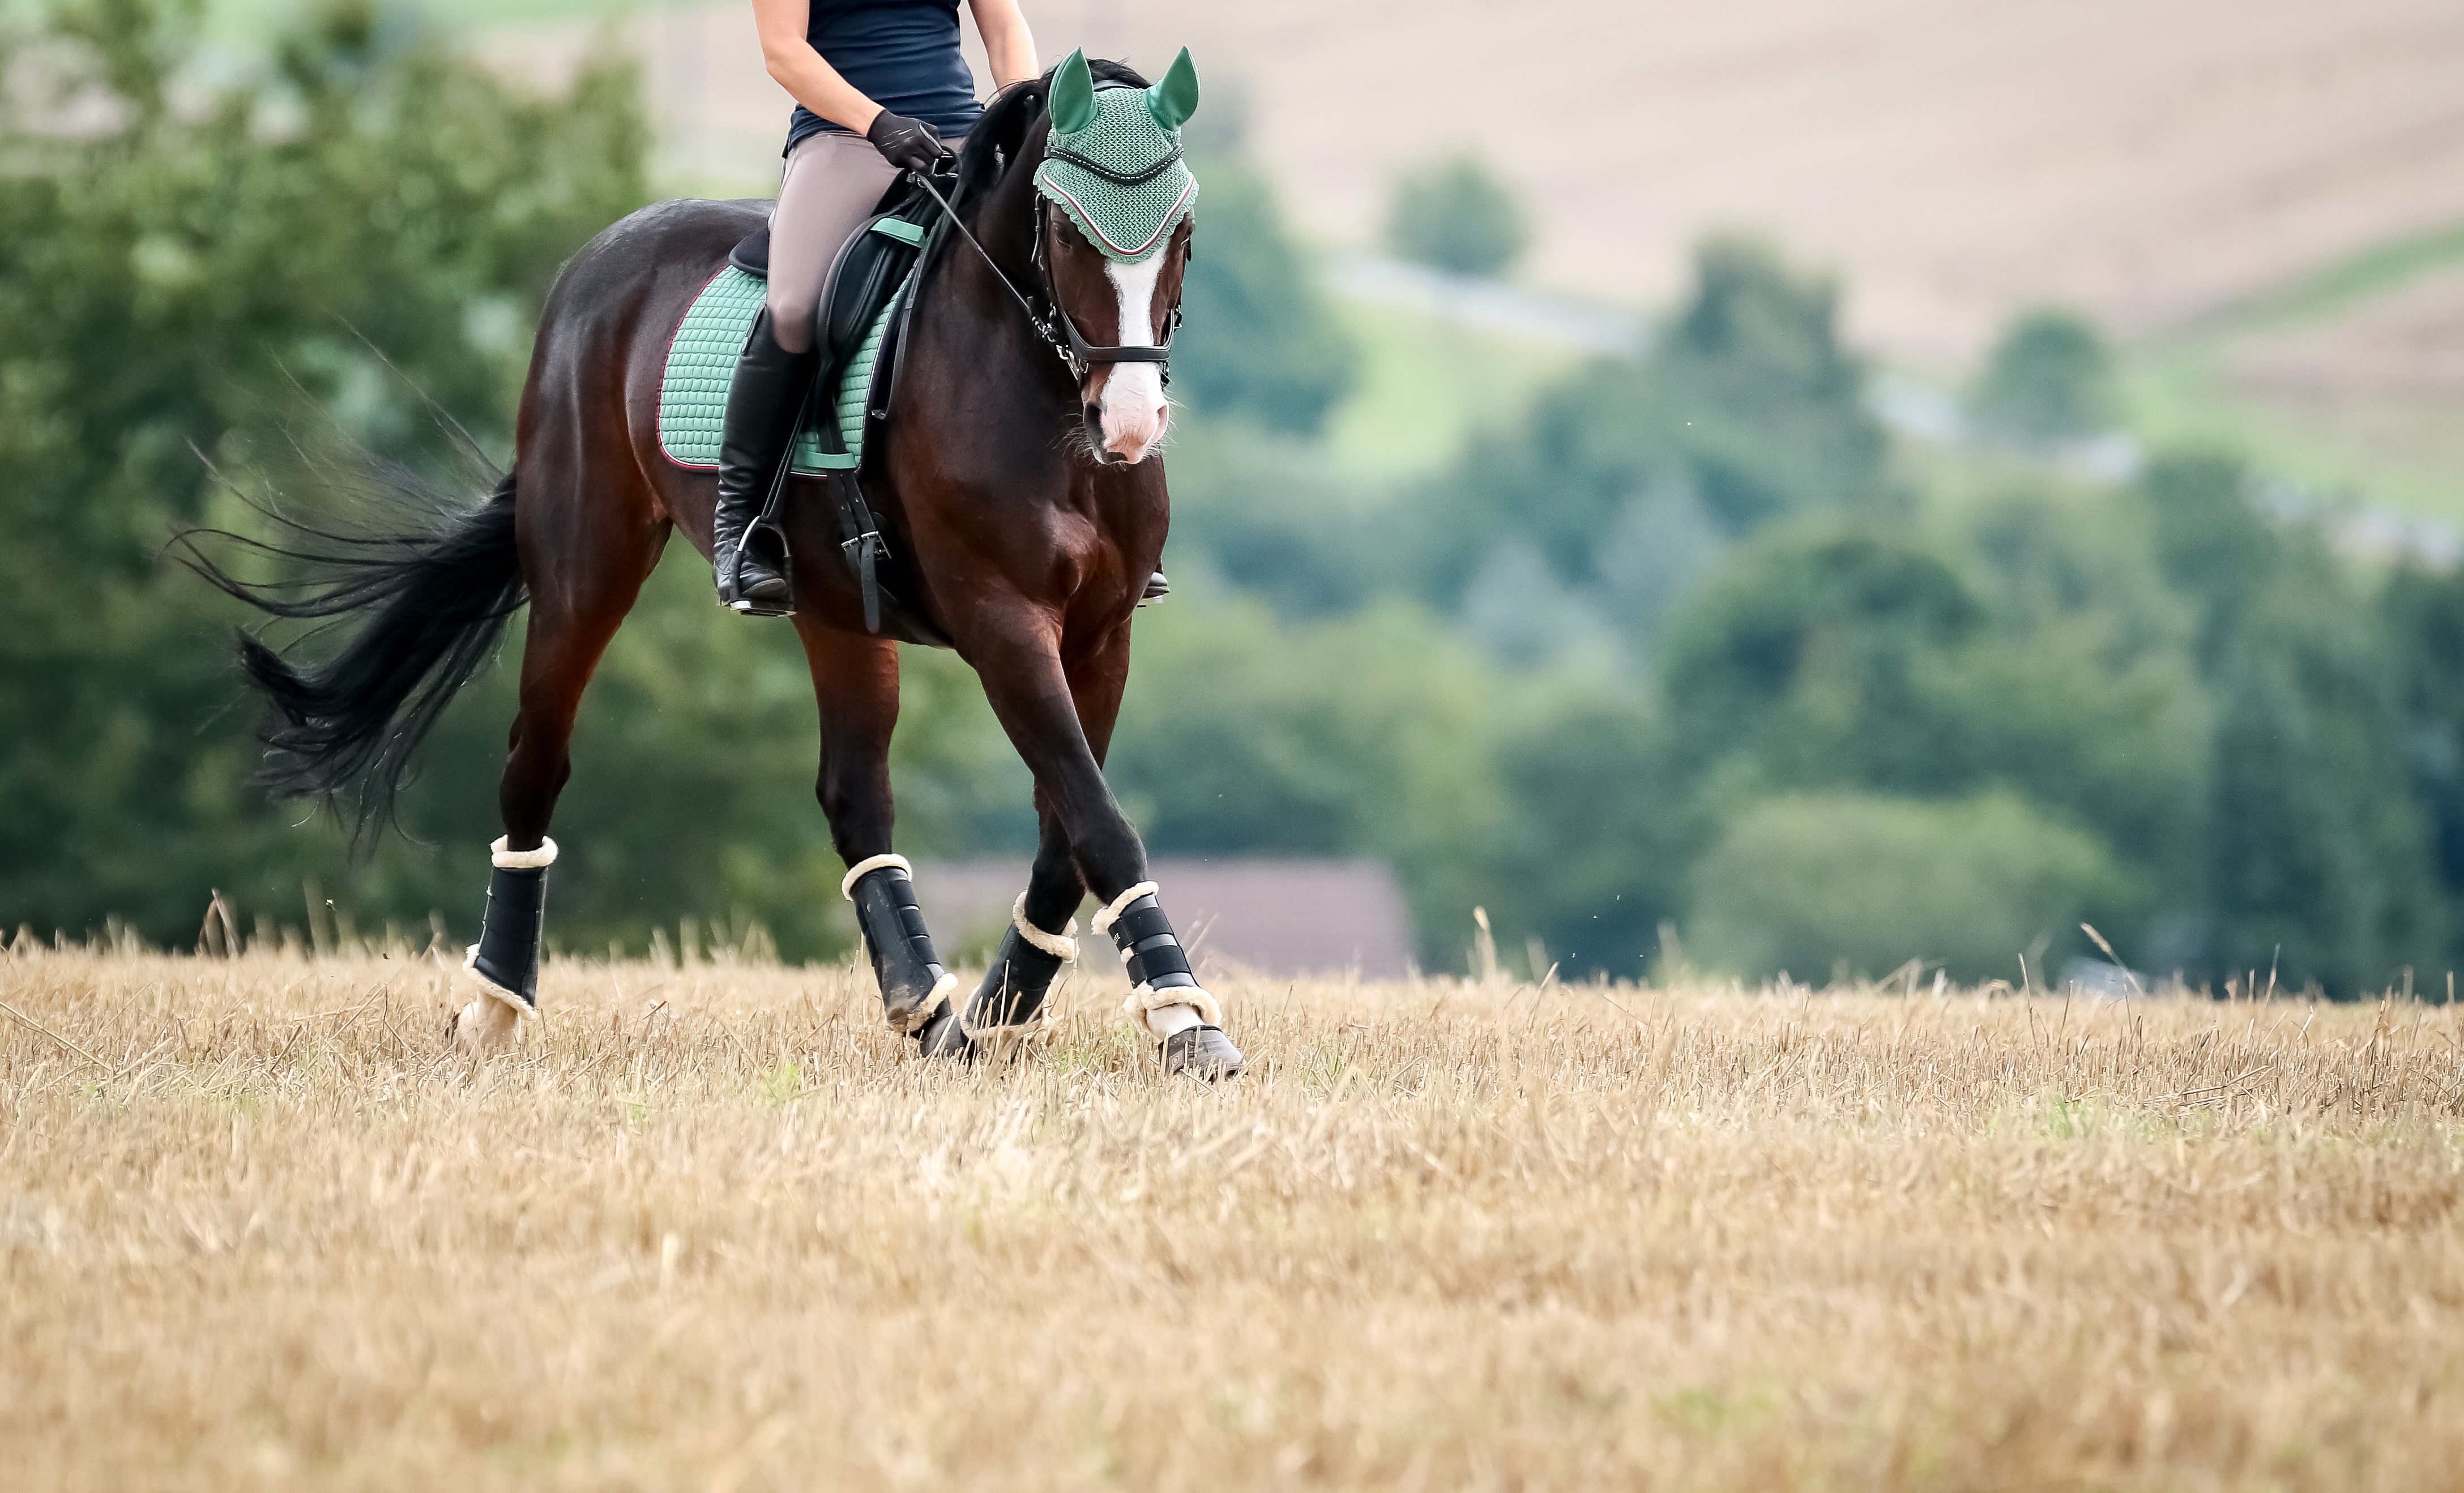 What is a warmblood?